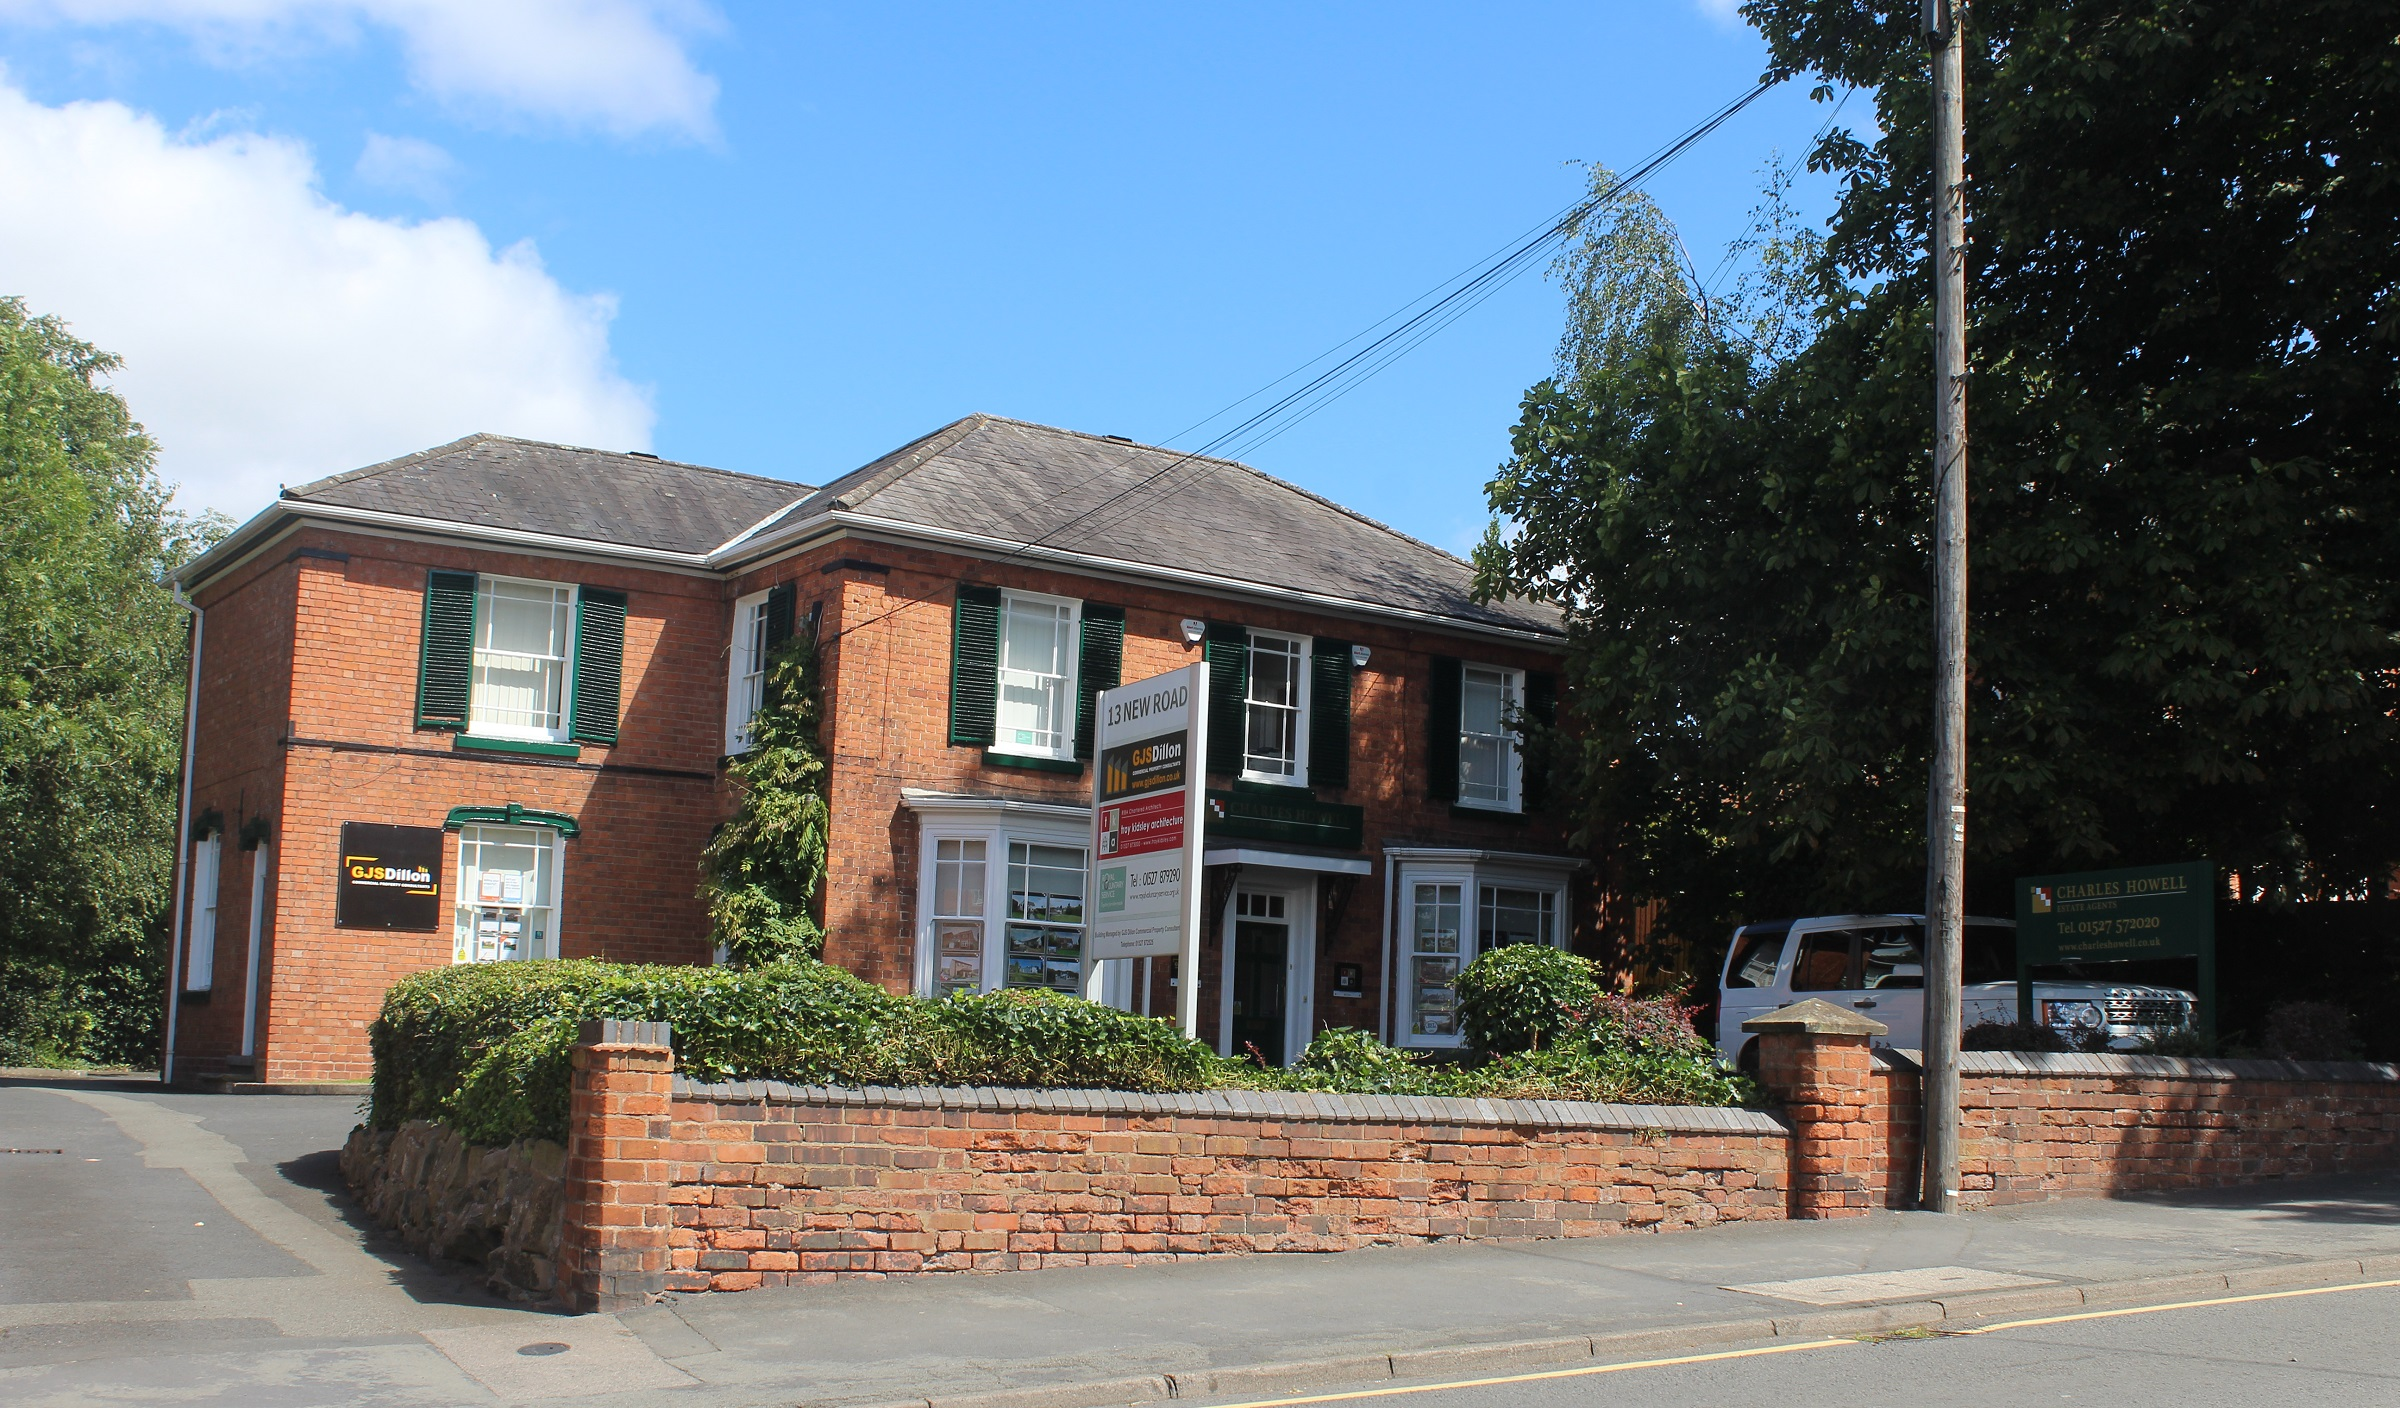 Our office is located at 13 New Road, Bromsgrove